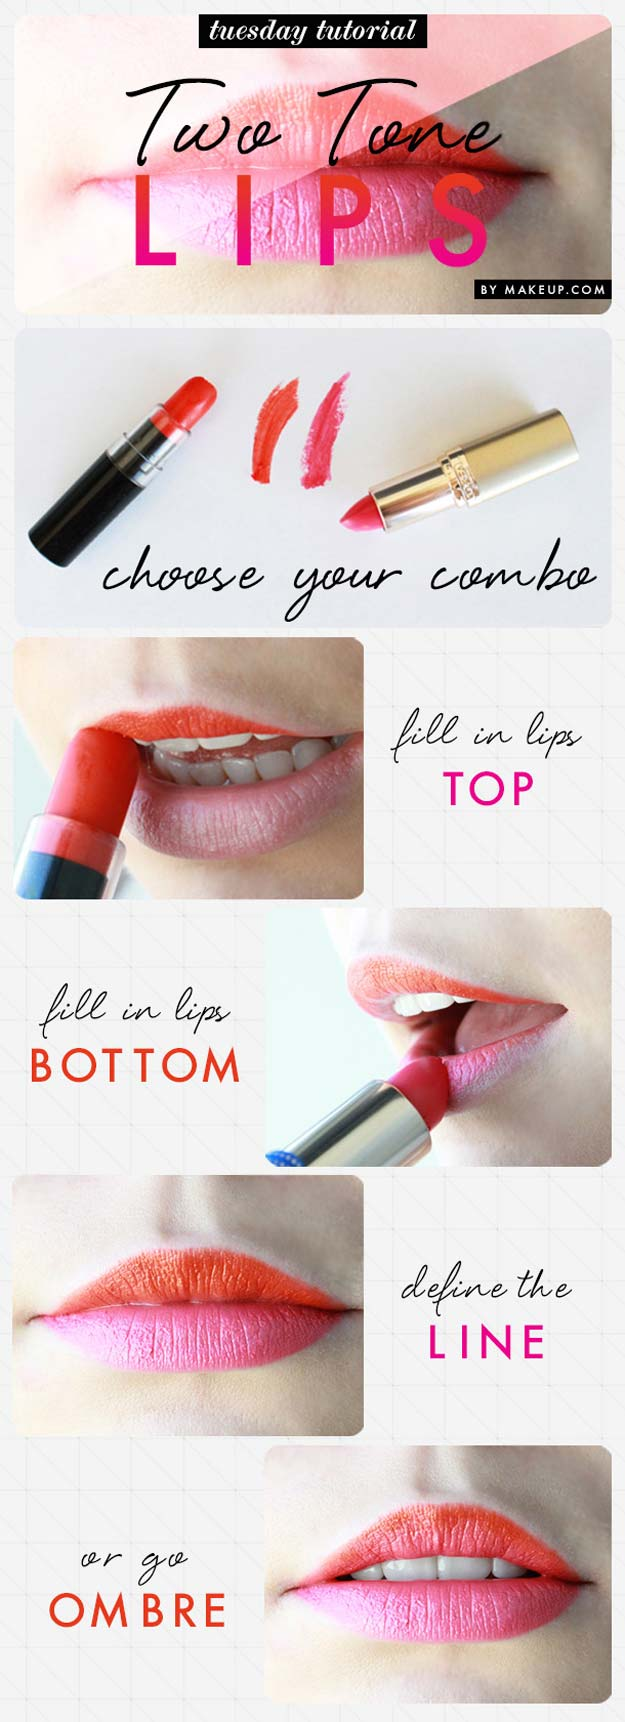 Best Makeup Tutorials for Teens -Two-Tone Lips - Easy Makeup Ideas for Beginners - Step by Step Tutorials for Foundation, Eye Shadow, Lipstick, Cheeks, Contour, Eyebrows and Eyes - Awesome Makeup Hacks and Tips for Simple DIY Beauty - Day and Evening Looks http://diyprojectsforteens.com/makeup-tutorials-teens